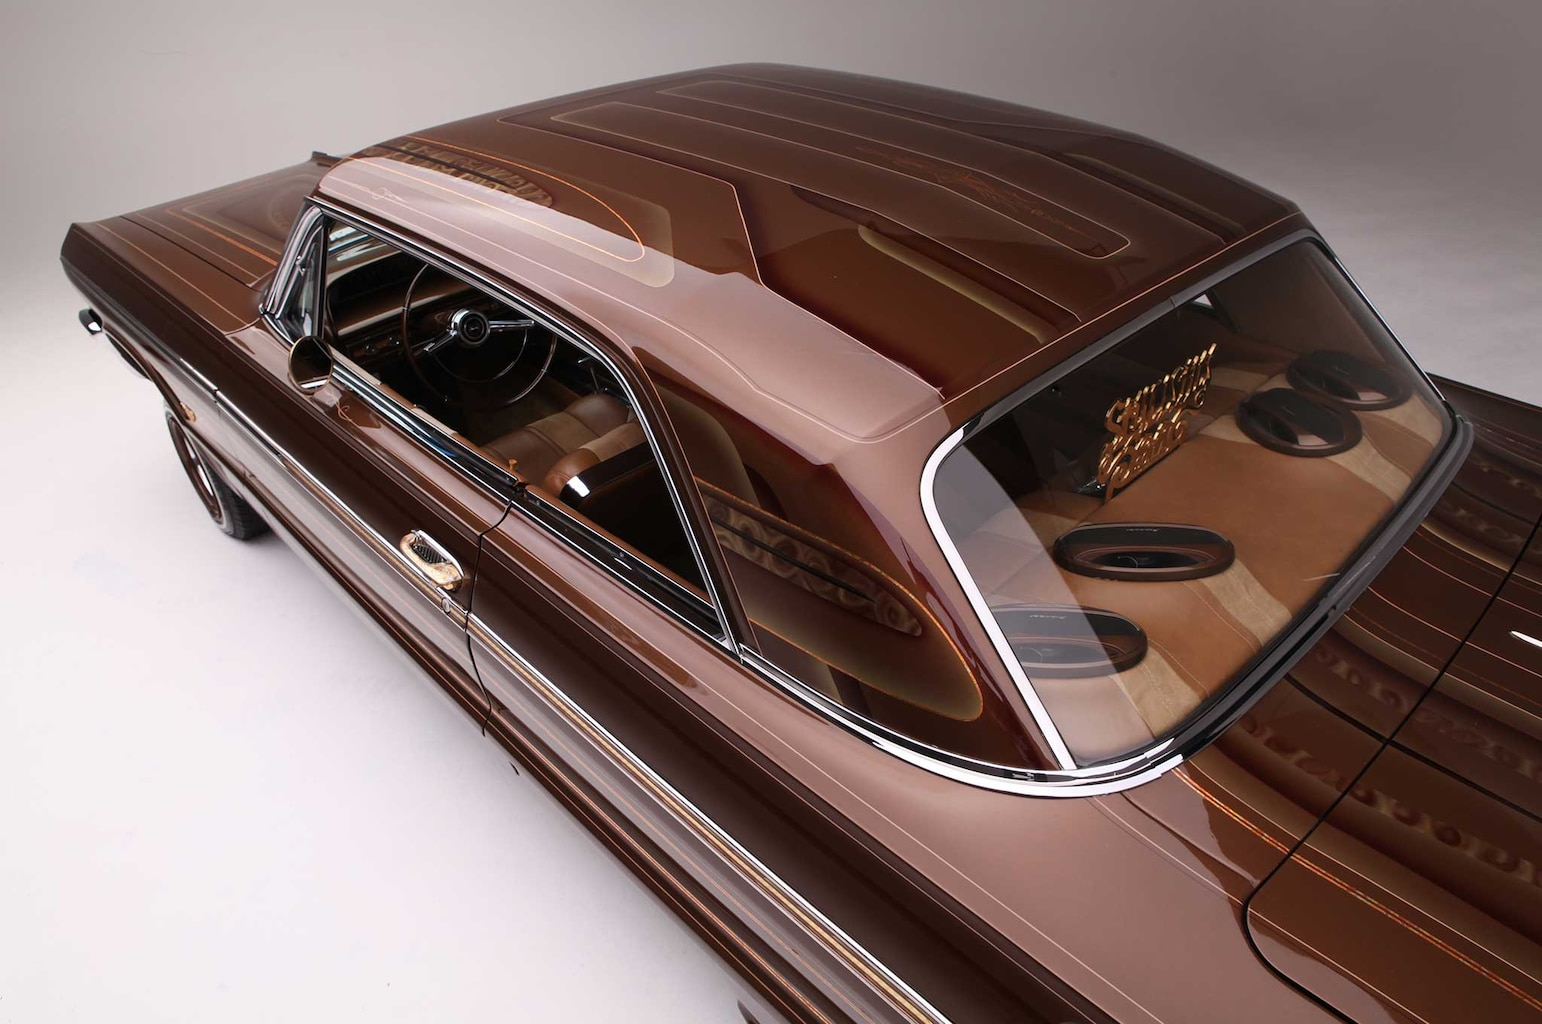 1964 chevrolet impala custom roof